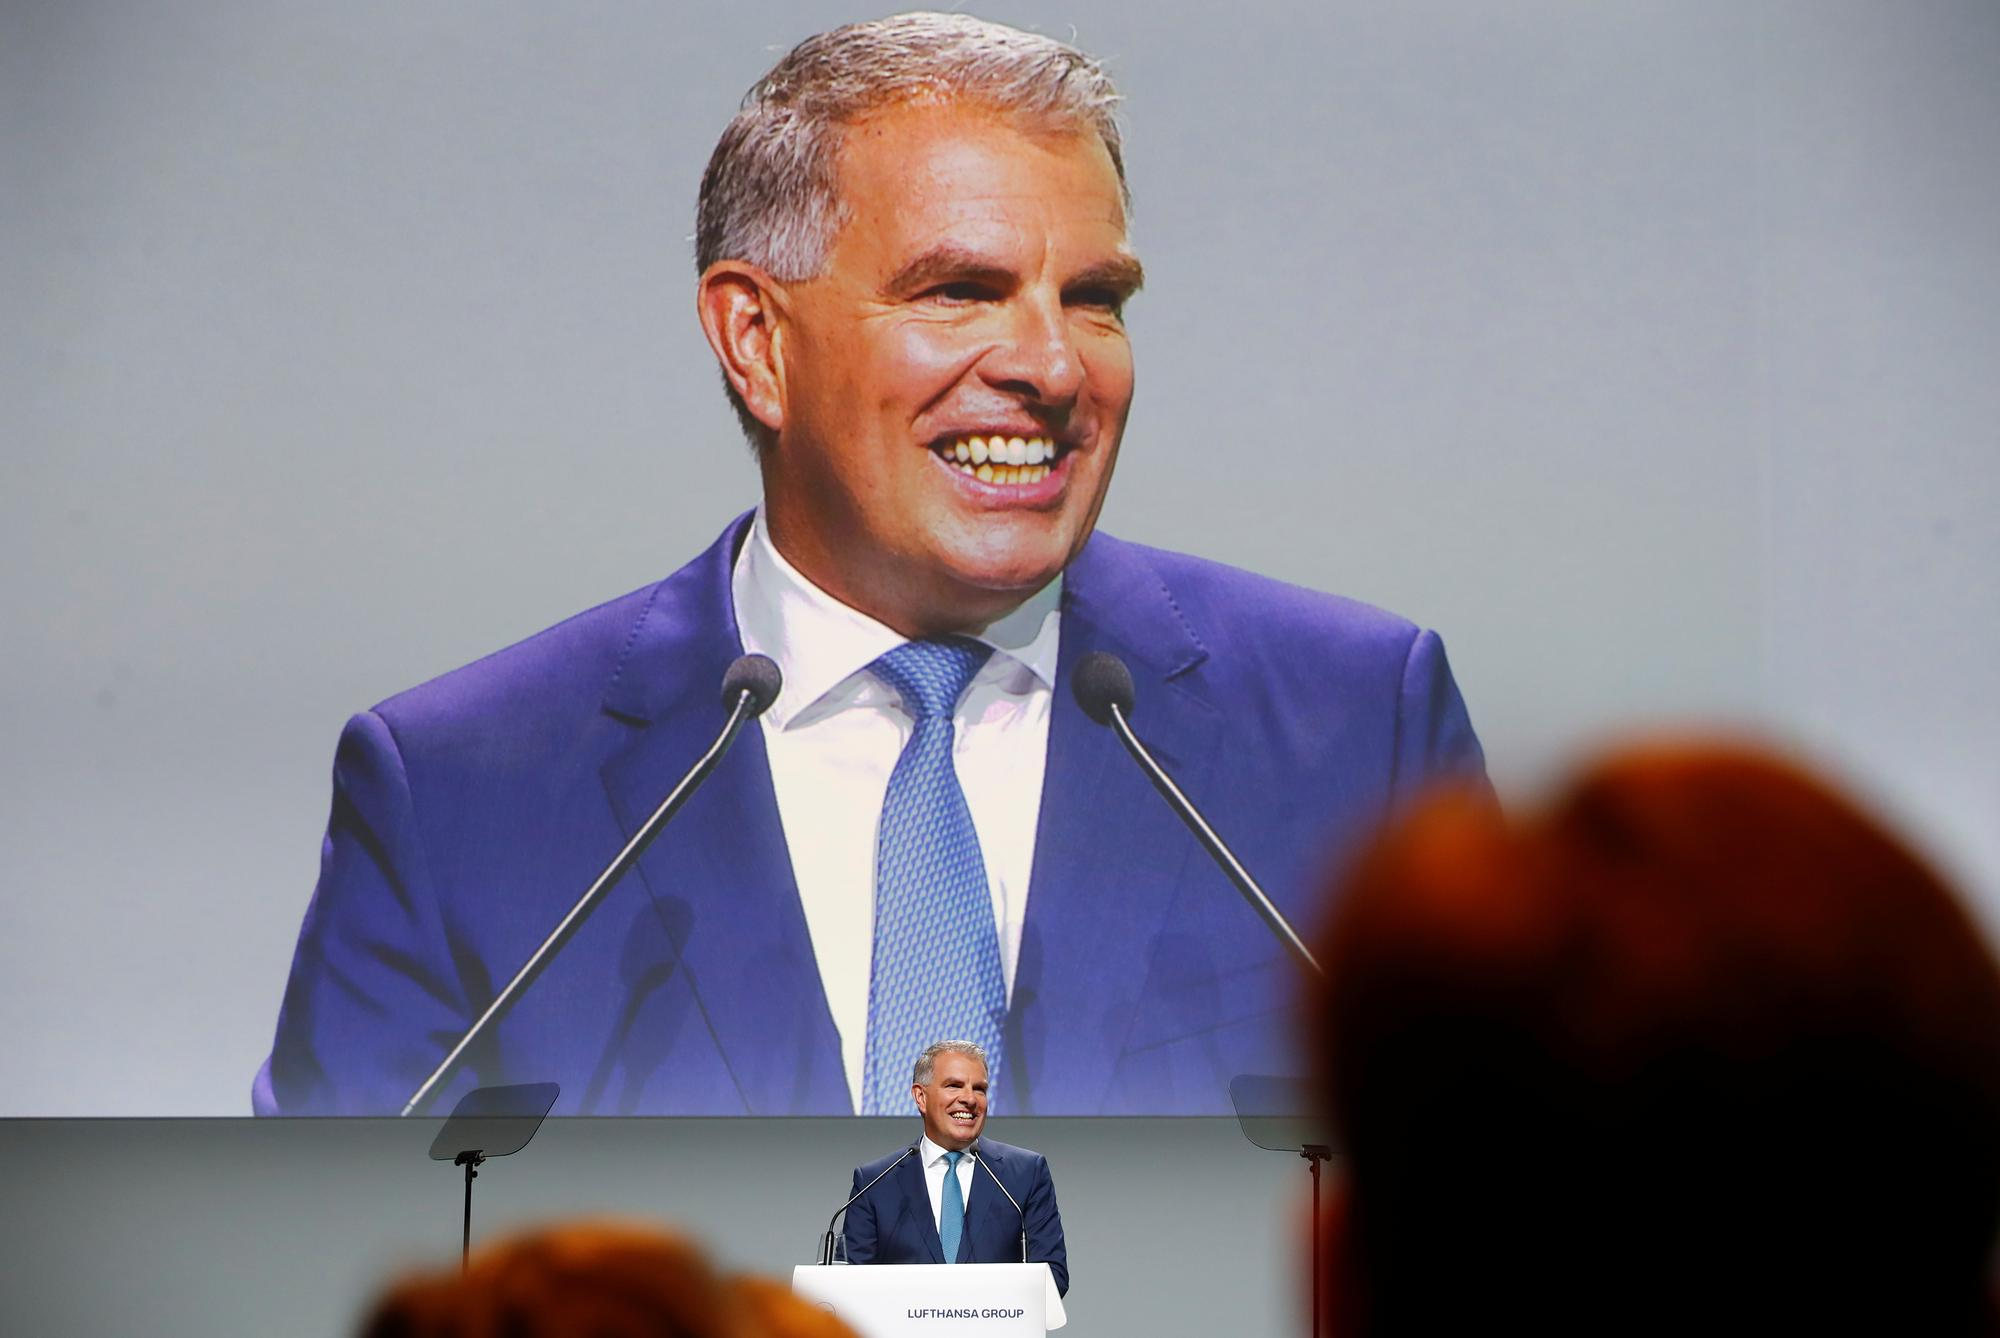 Lufthansa summer bookings looking good: CEO in NZZ